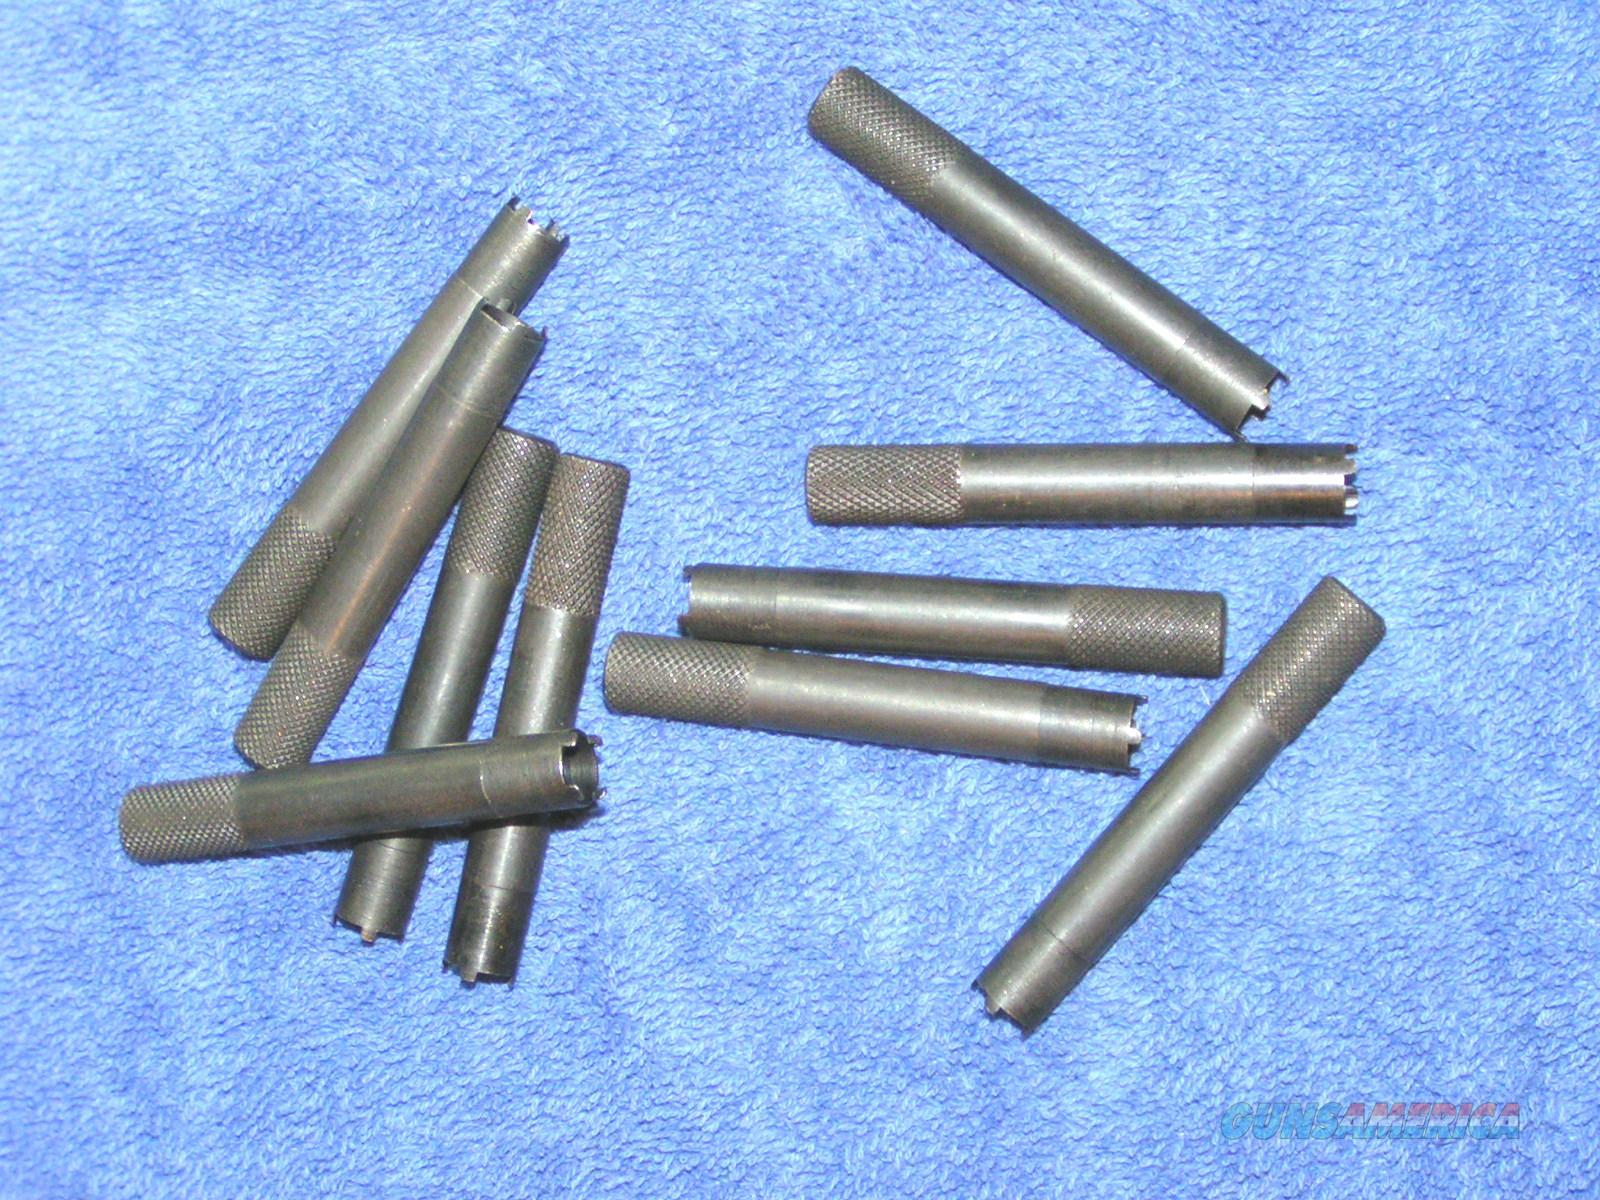 10 AR15 sight ajustment tools for A2 sight $29  Non-Guns > Gun Parts > M16-AR15